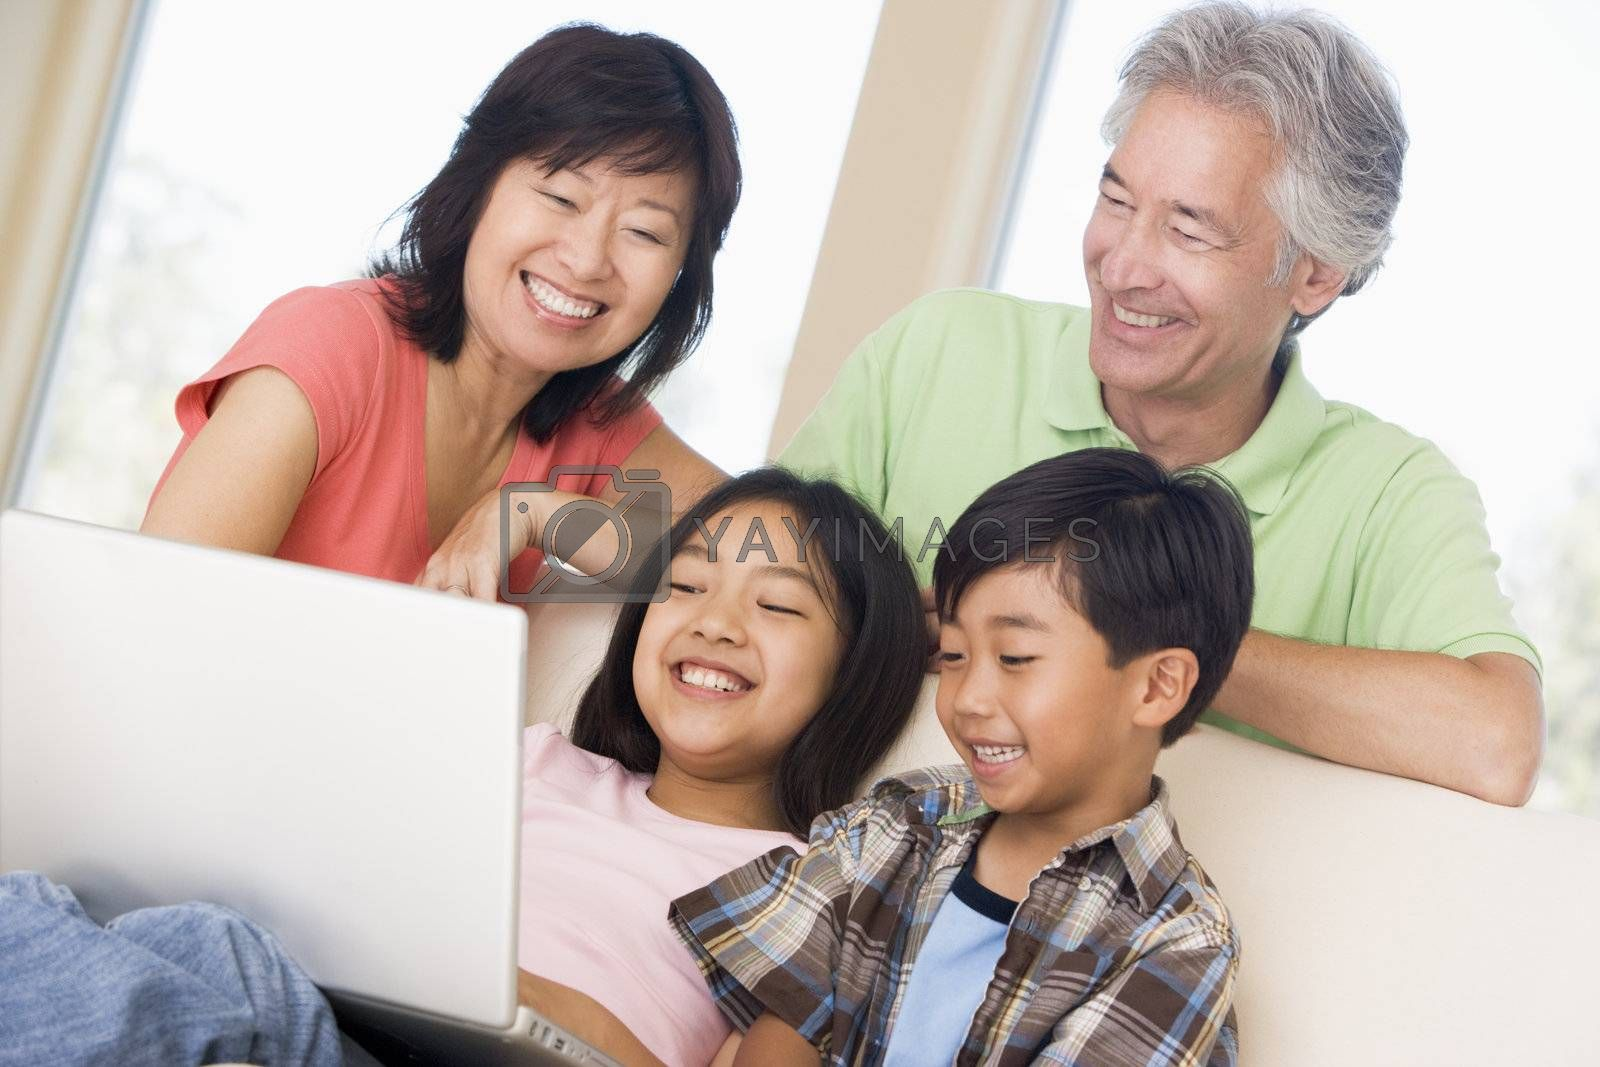 Couple with two young children in living room with laptop smilin by MonkeyBusiness